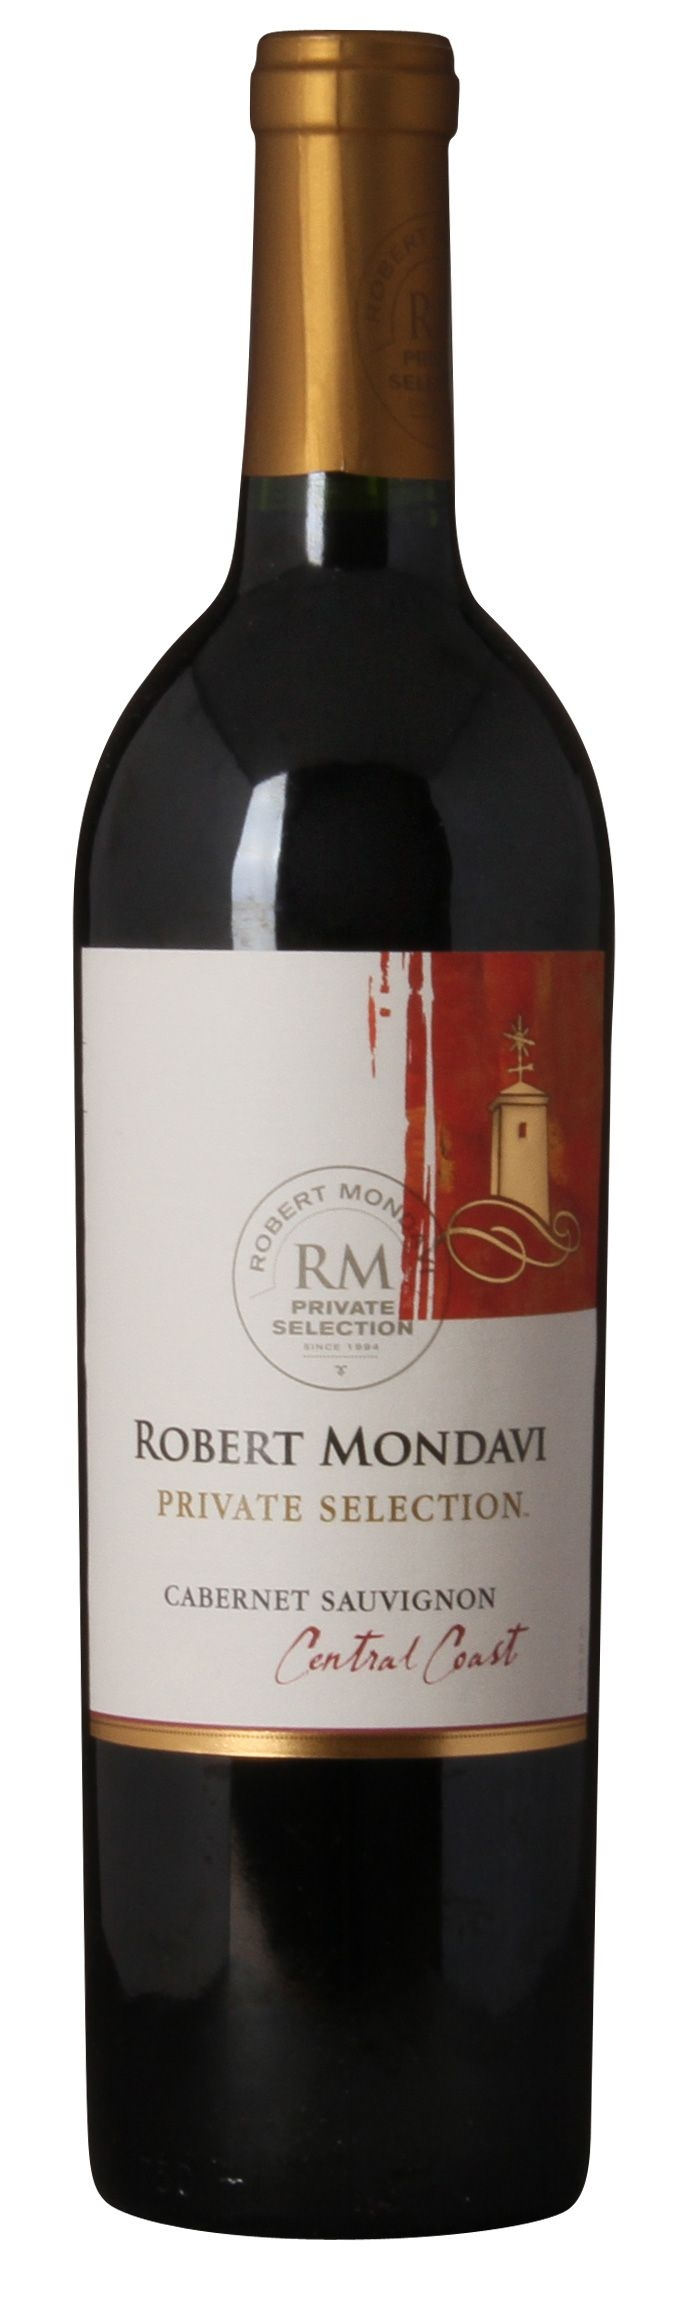 Robert-Mondavi-Private-Selection-Cabernet-Sauvignon-2011.US-CS-0086-11a-1.jpg